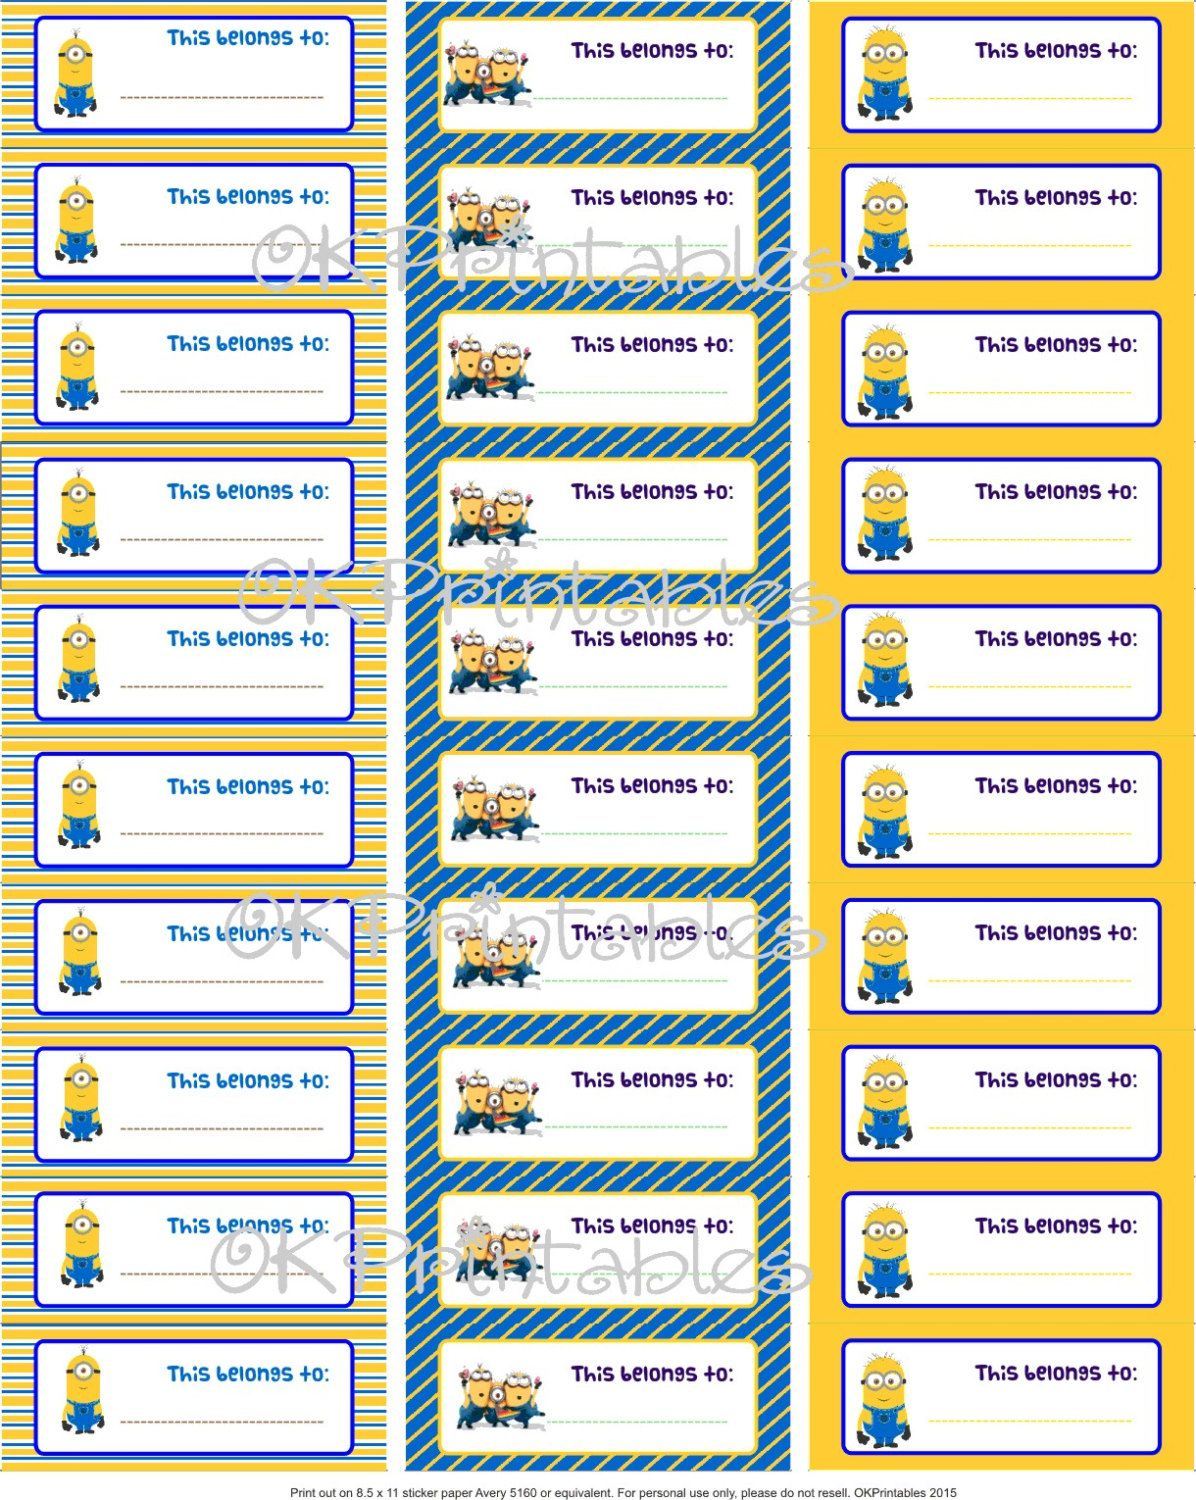 Minions Back to school Labels - Despicable Me - Labels - School supplies - Tags - Boys - Blue - Yellow - Fun labels - Instant download- PDF by OKprintables on Etsy